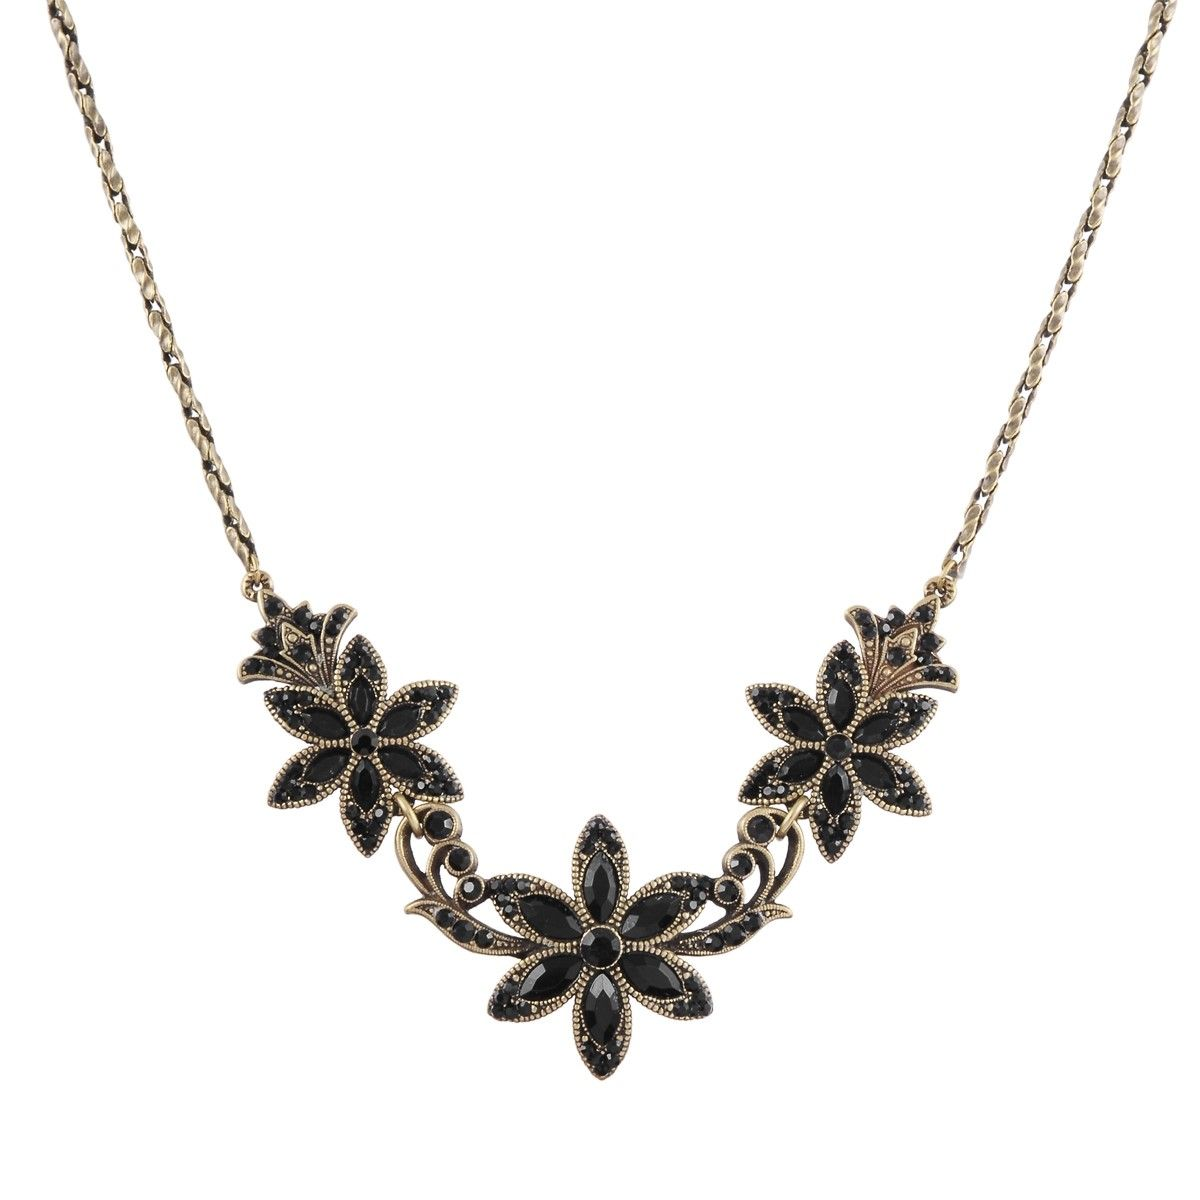 NECKLACE 16343 - Michal Negrin